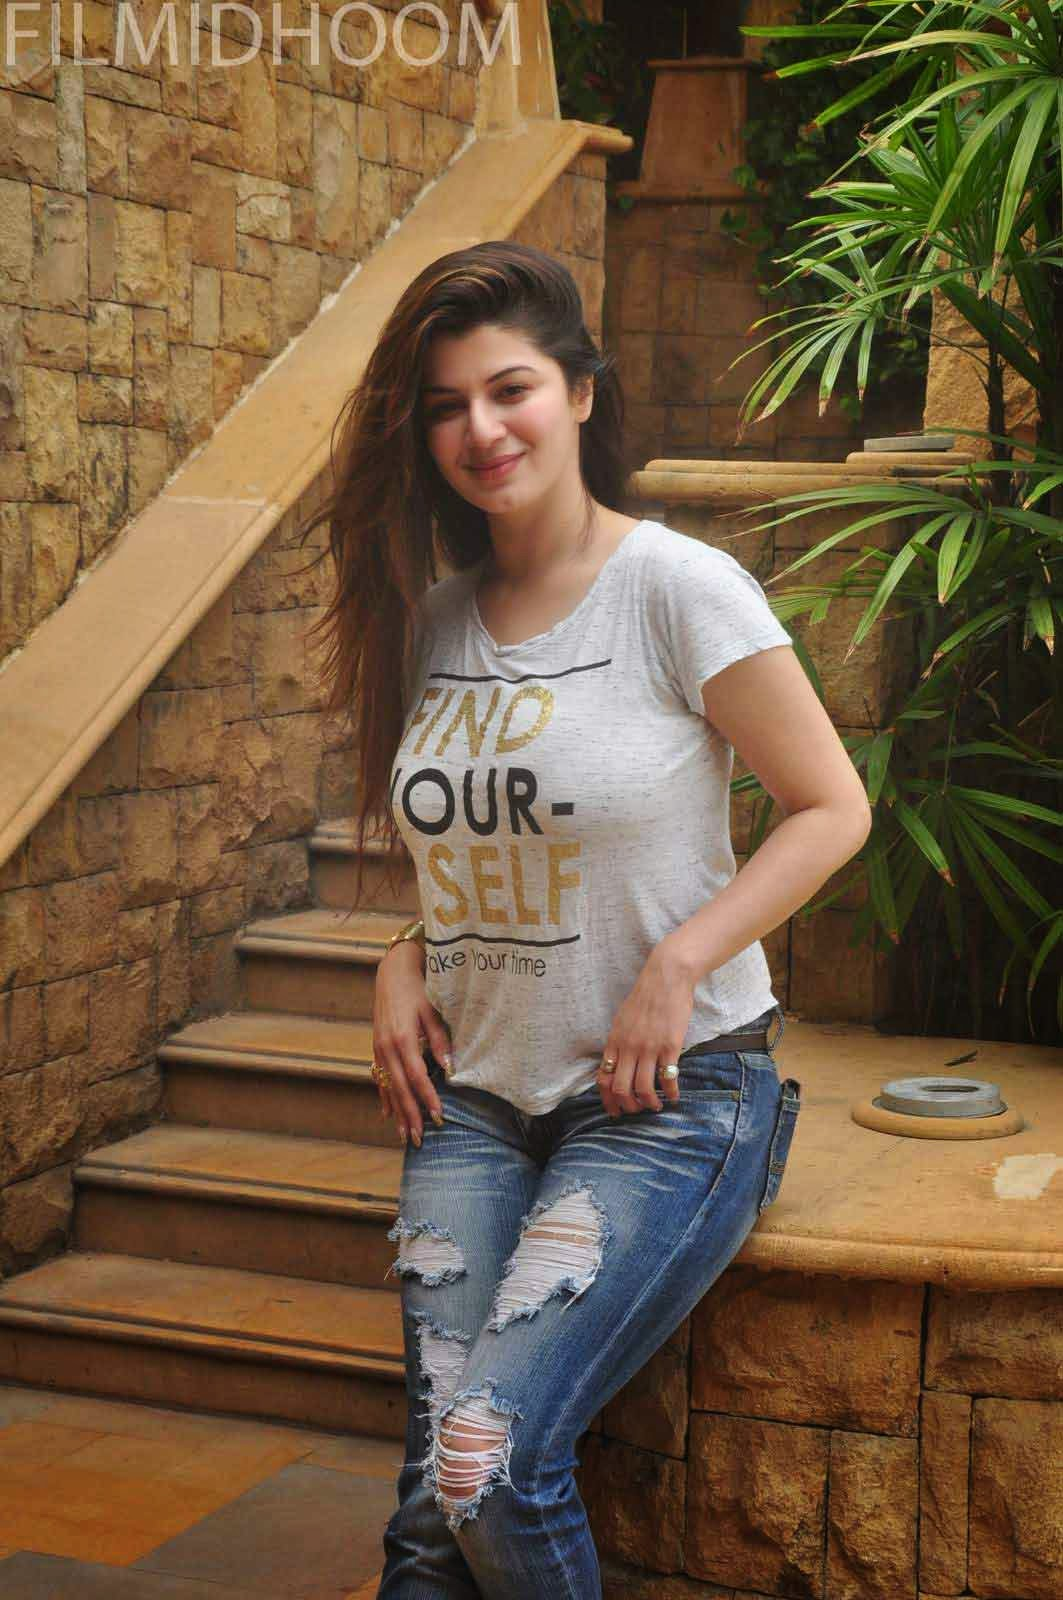 kainaat arora hot facebook profile pictures hd wallpapers images